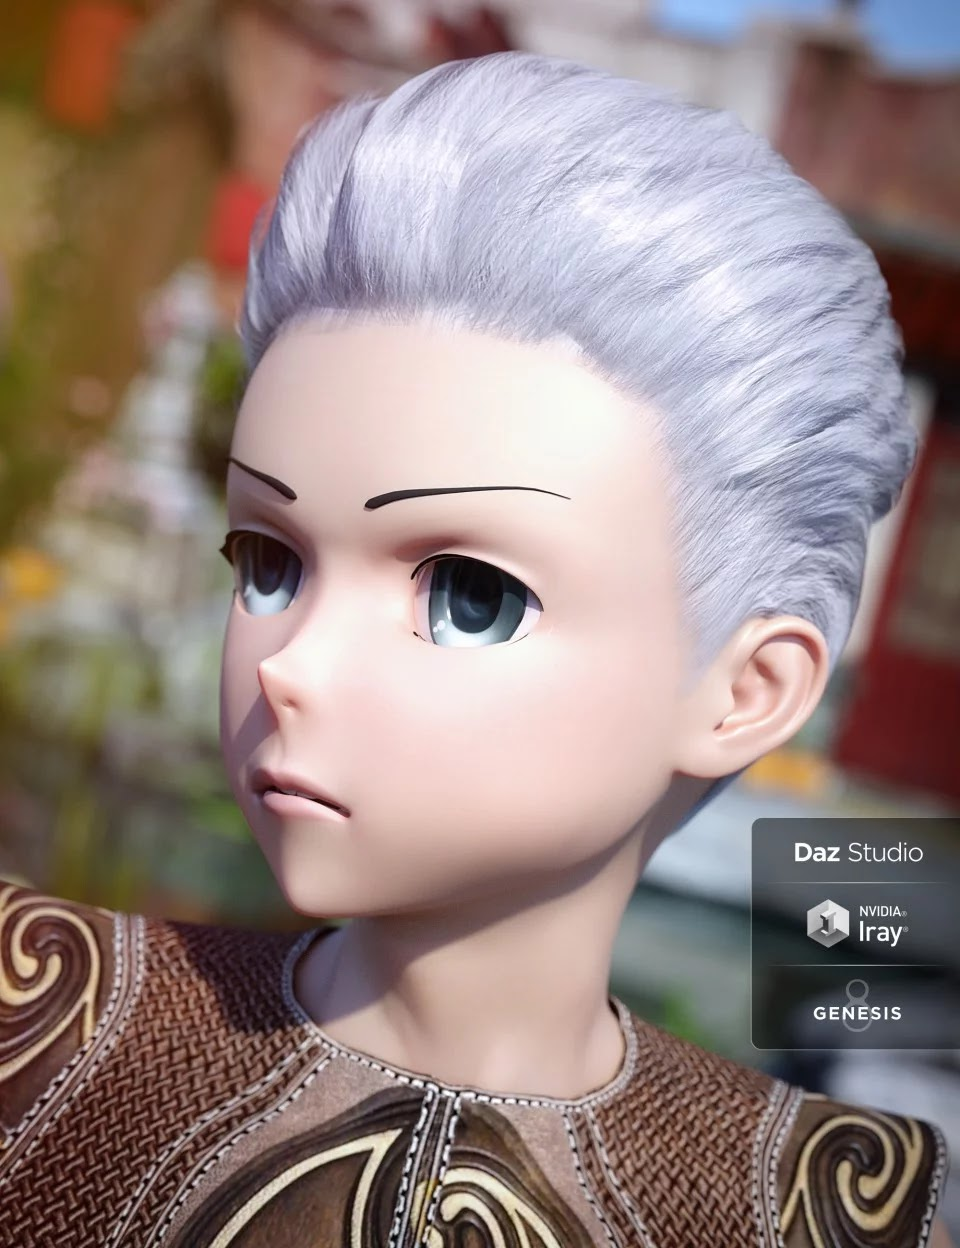 Short Anime Hair for Genesis 3 and 8 Male(s)_DAZ3D下载站